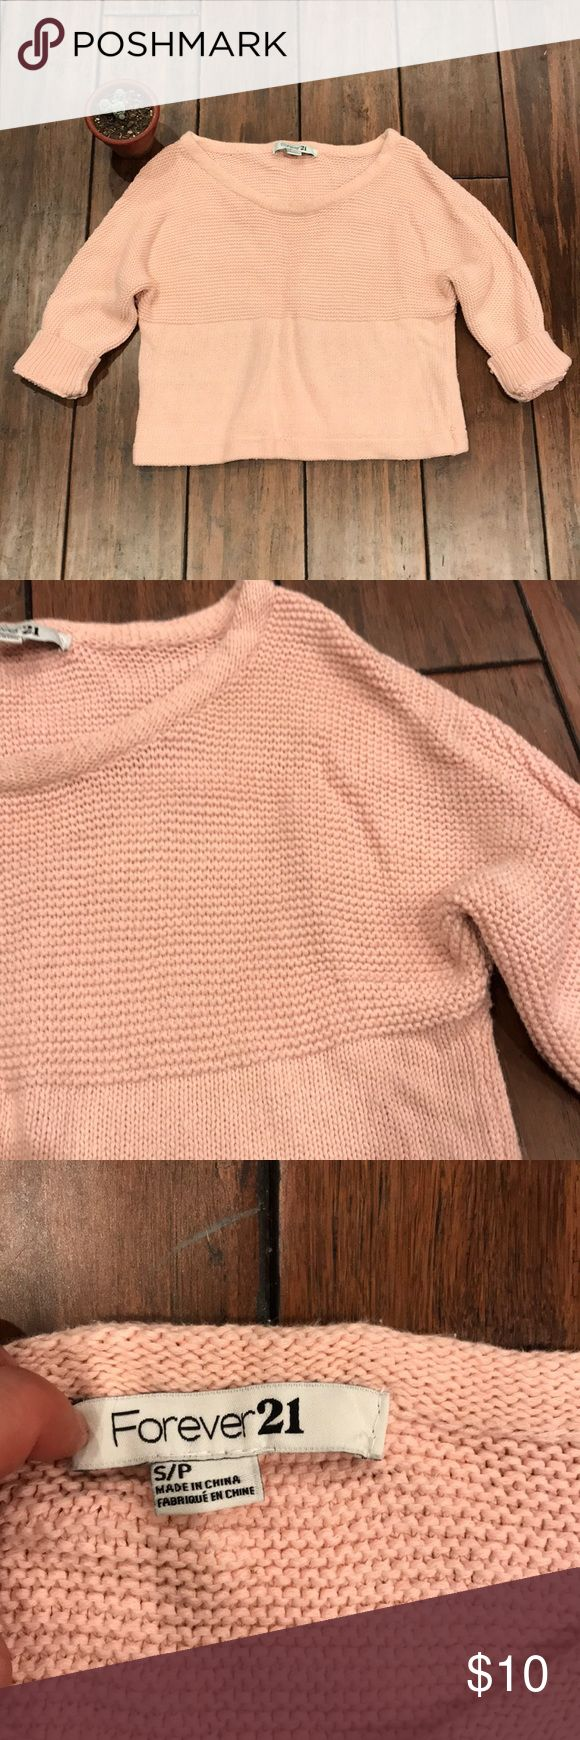 ☁️Rosy Blush Baby Pink Cropped Knitted Sweater☁️ Dress up or dress down, or wear over your favorite body con midi or mini dres; this little sweater's quite versatile! Cute and sweet! Price negotiable & bundle up to save even more!! Forever 21 Sweaters Crew & Scoop Necks